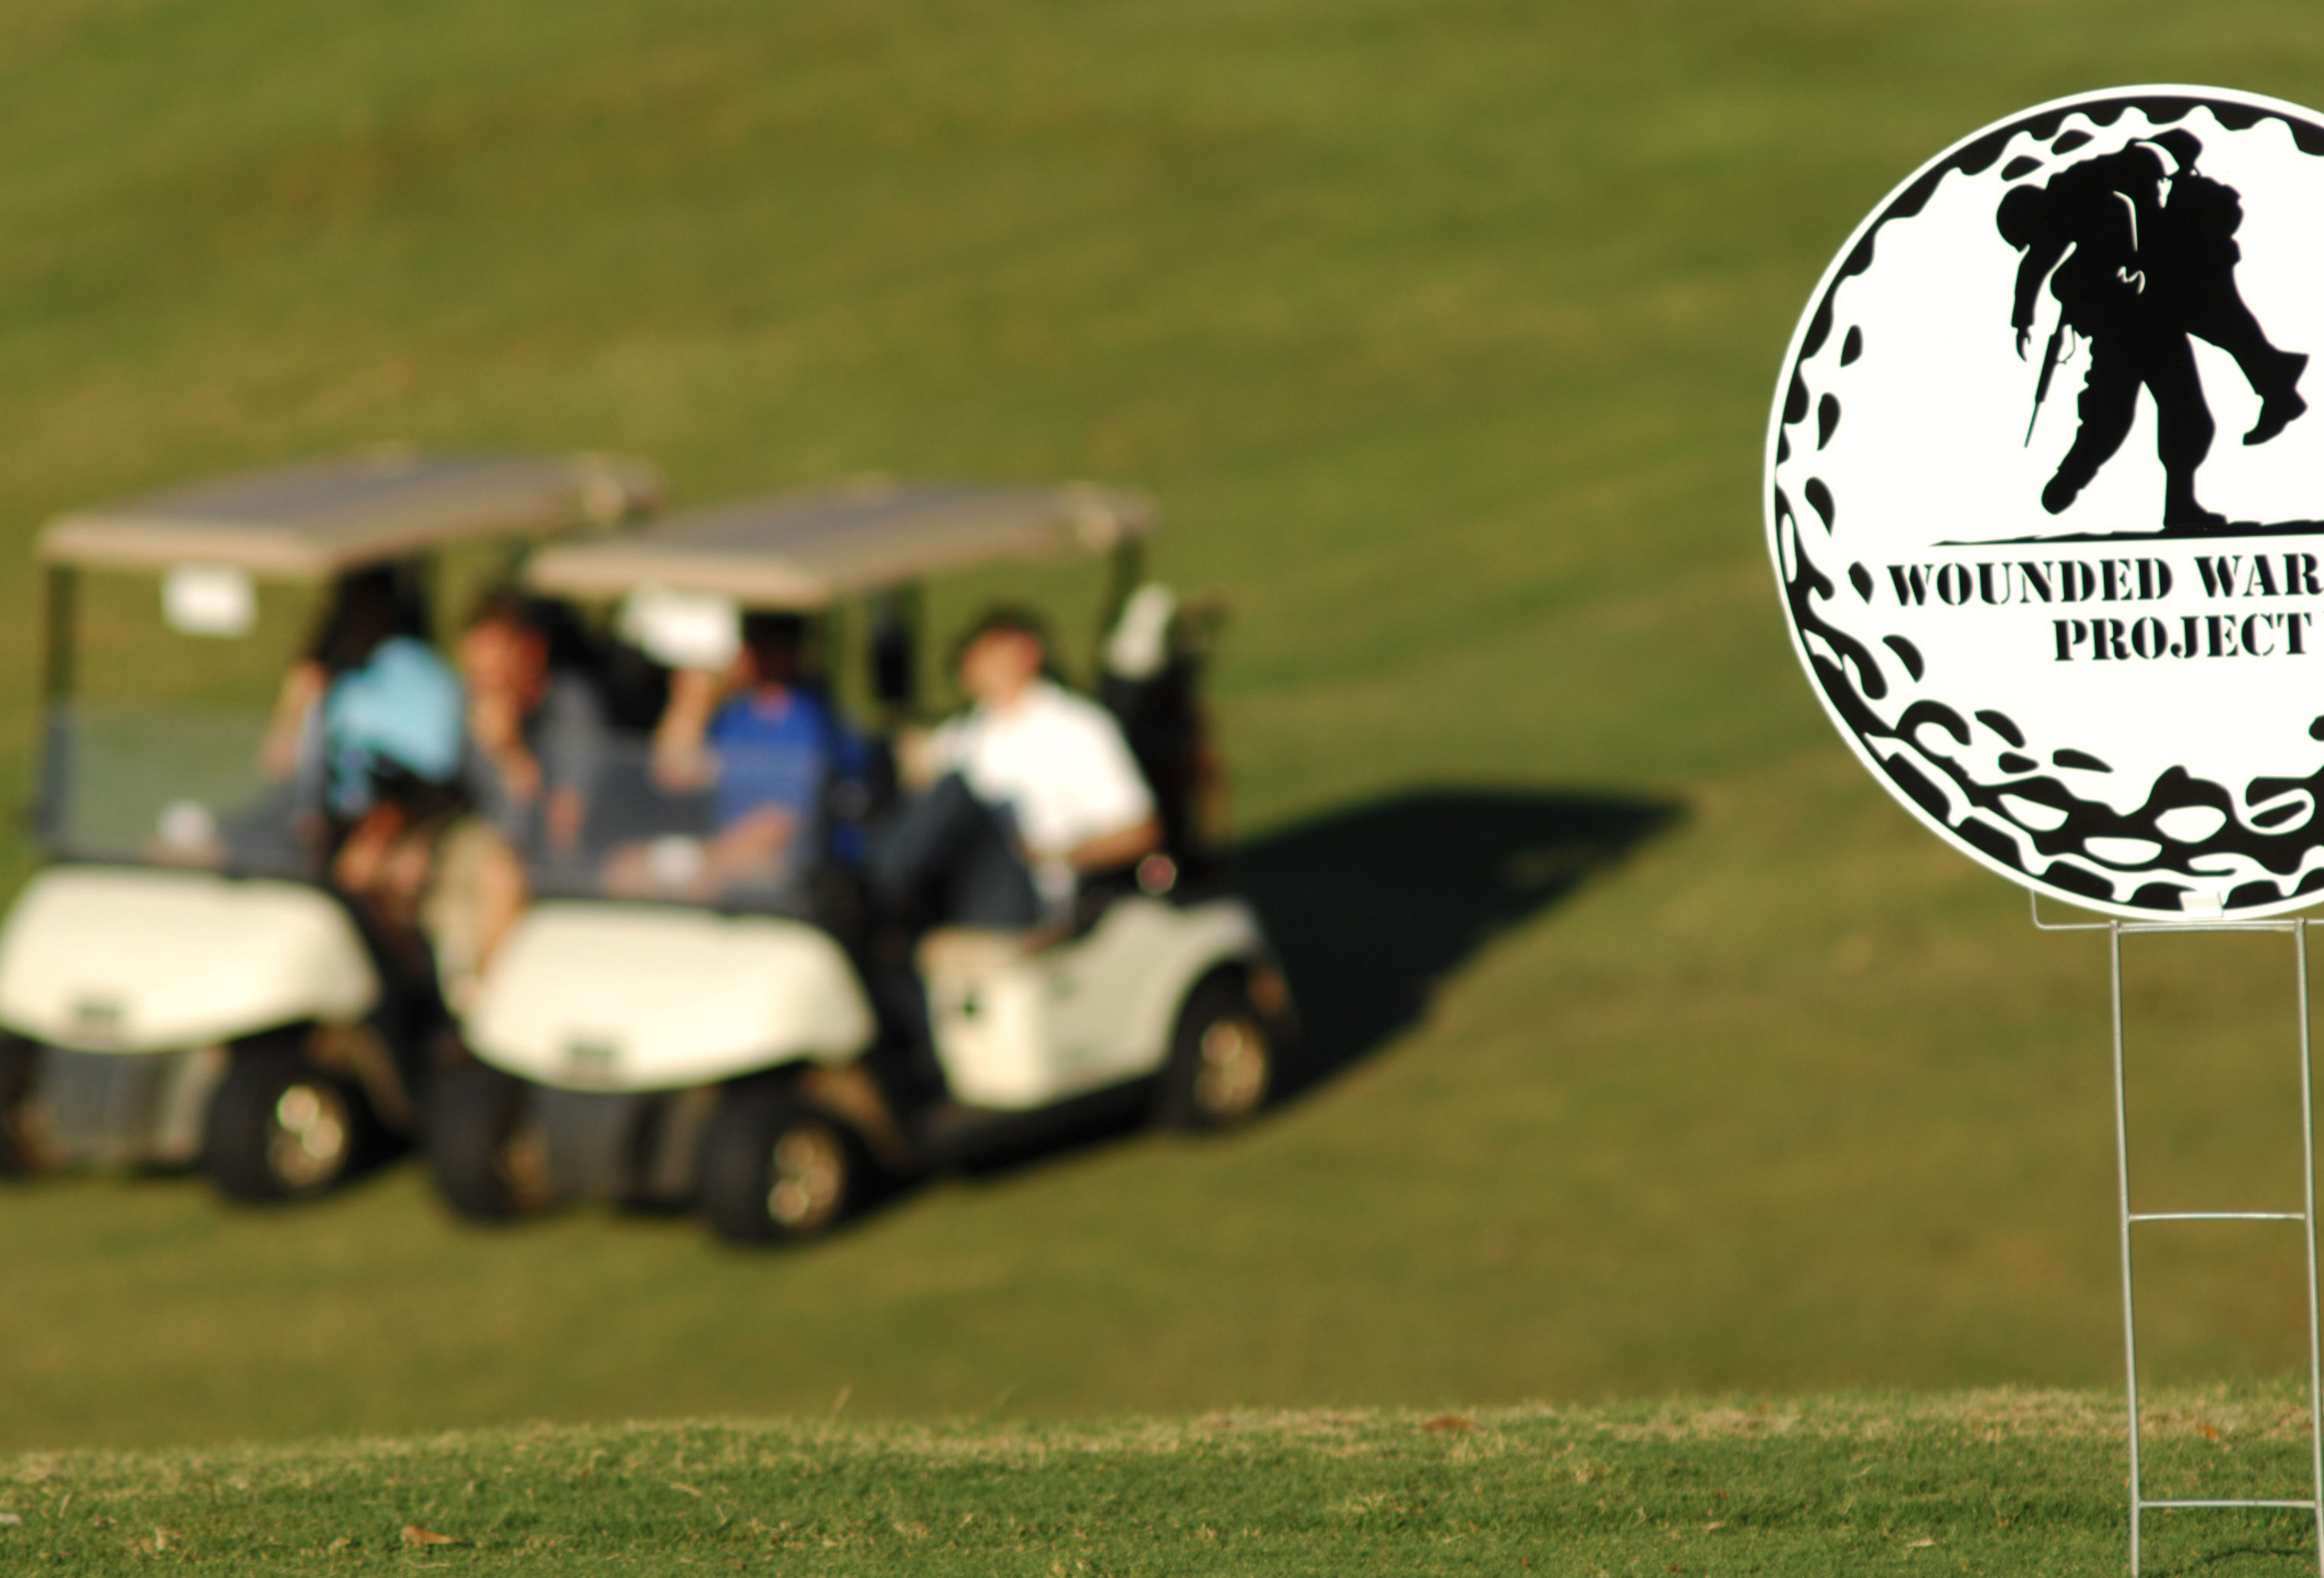 Golf for Wounded Warriors